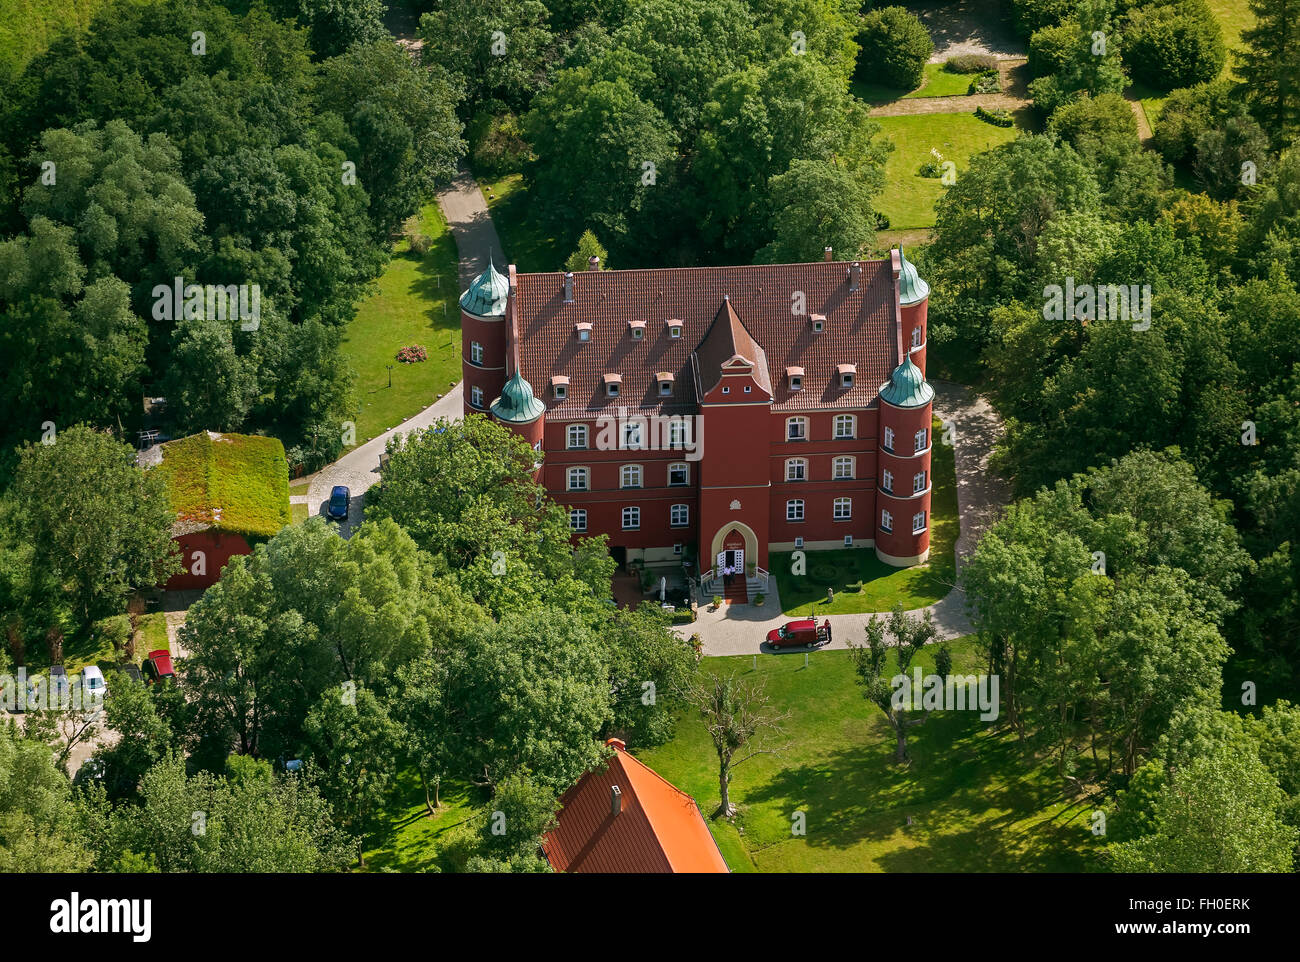 Aerial view, Castle Hotel, Castle Spyker, Sweden Key, Glowe, Rügen, Mecklenburg-Vorpommern, Germany, Europe, - Stock Image